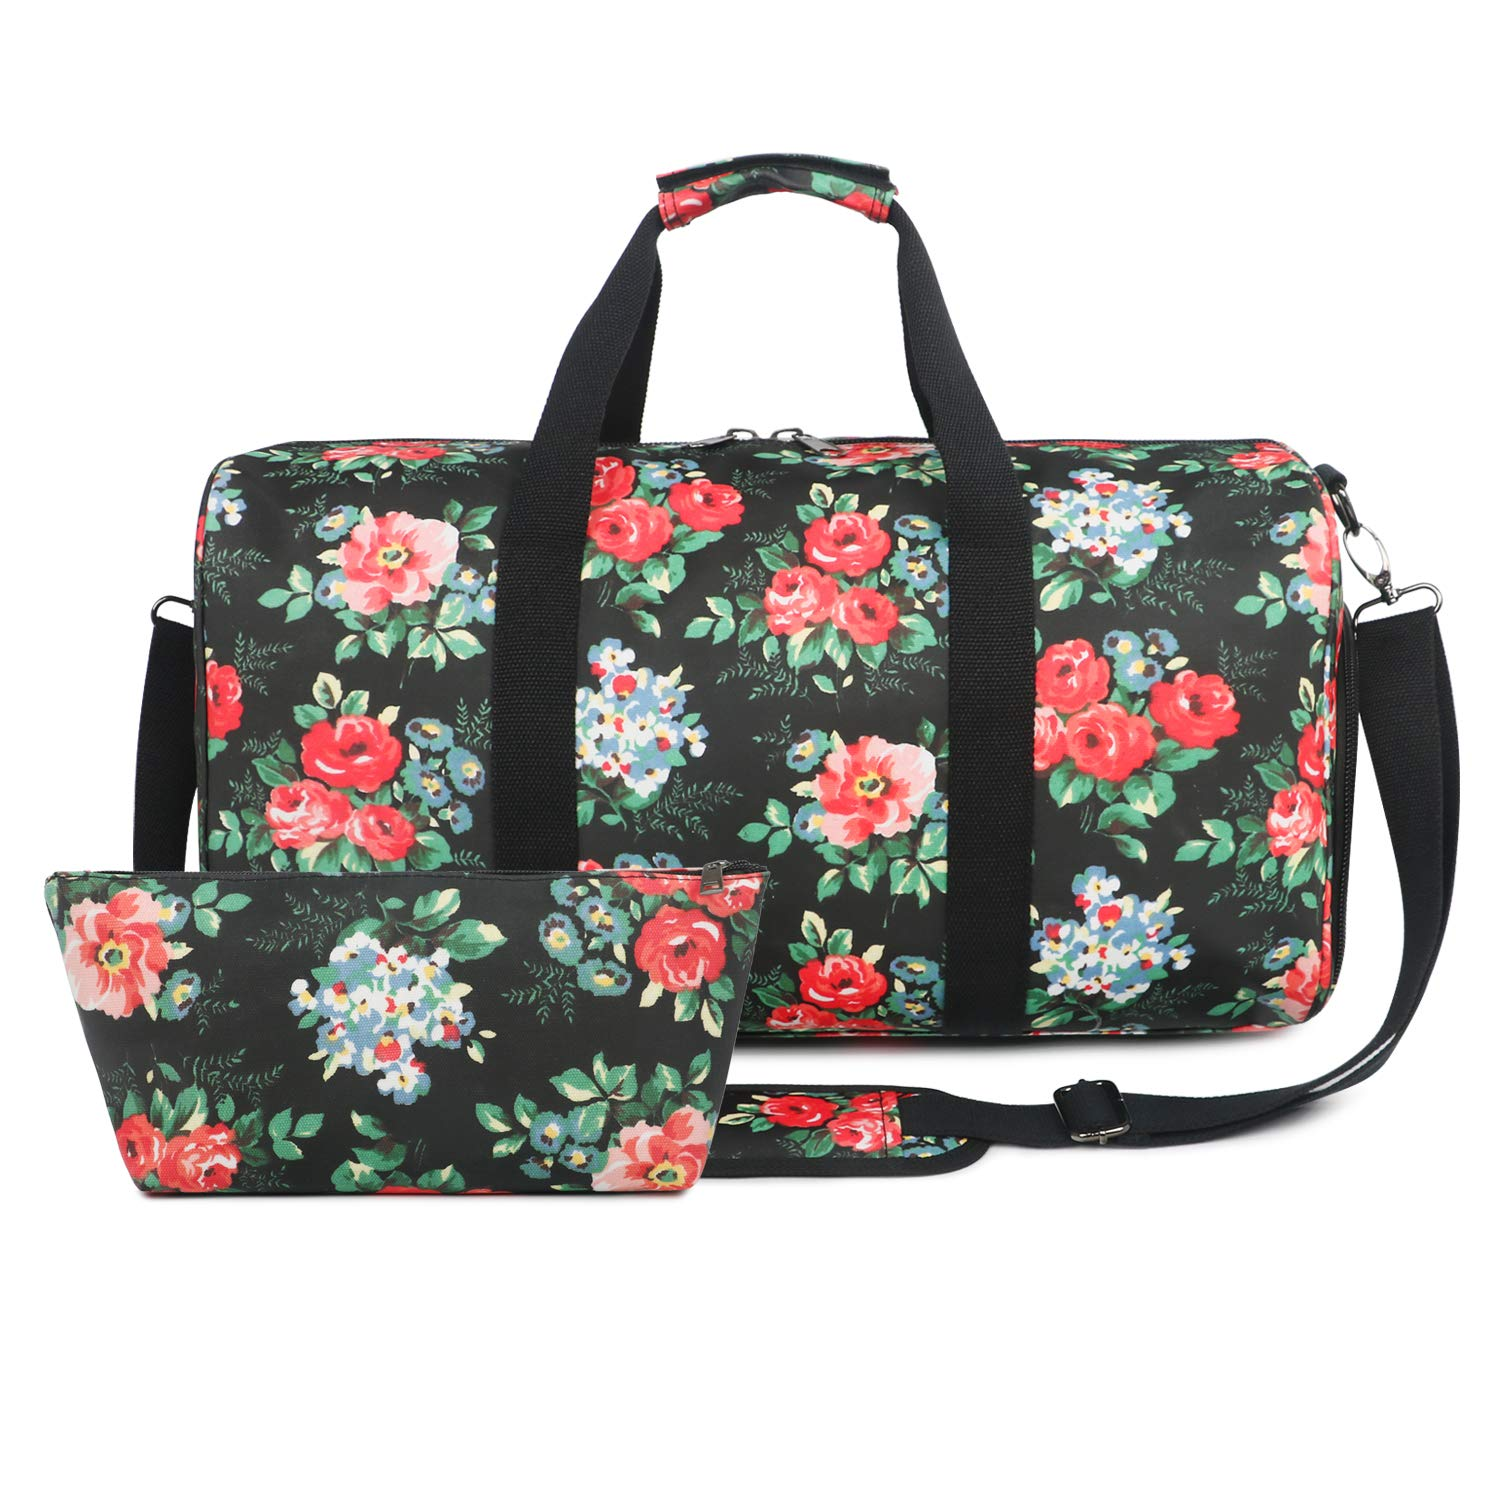 Oflamn Large Duffle Bag Canvas Leather Weekender Overnight Travel Carry On Tote Bag with Shoe Compartment and Free Toiletry Bag